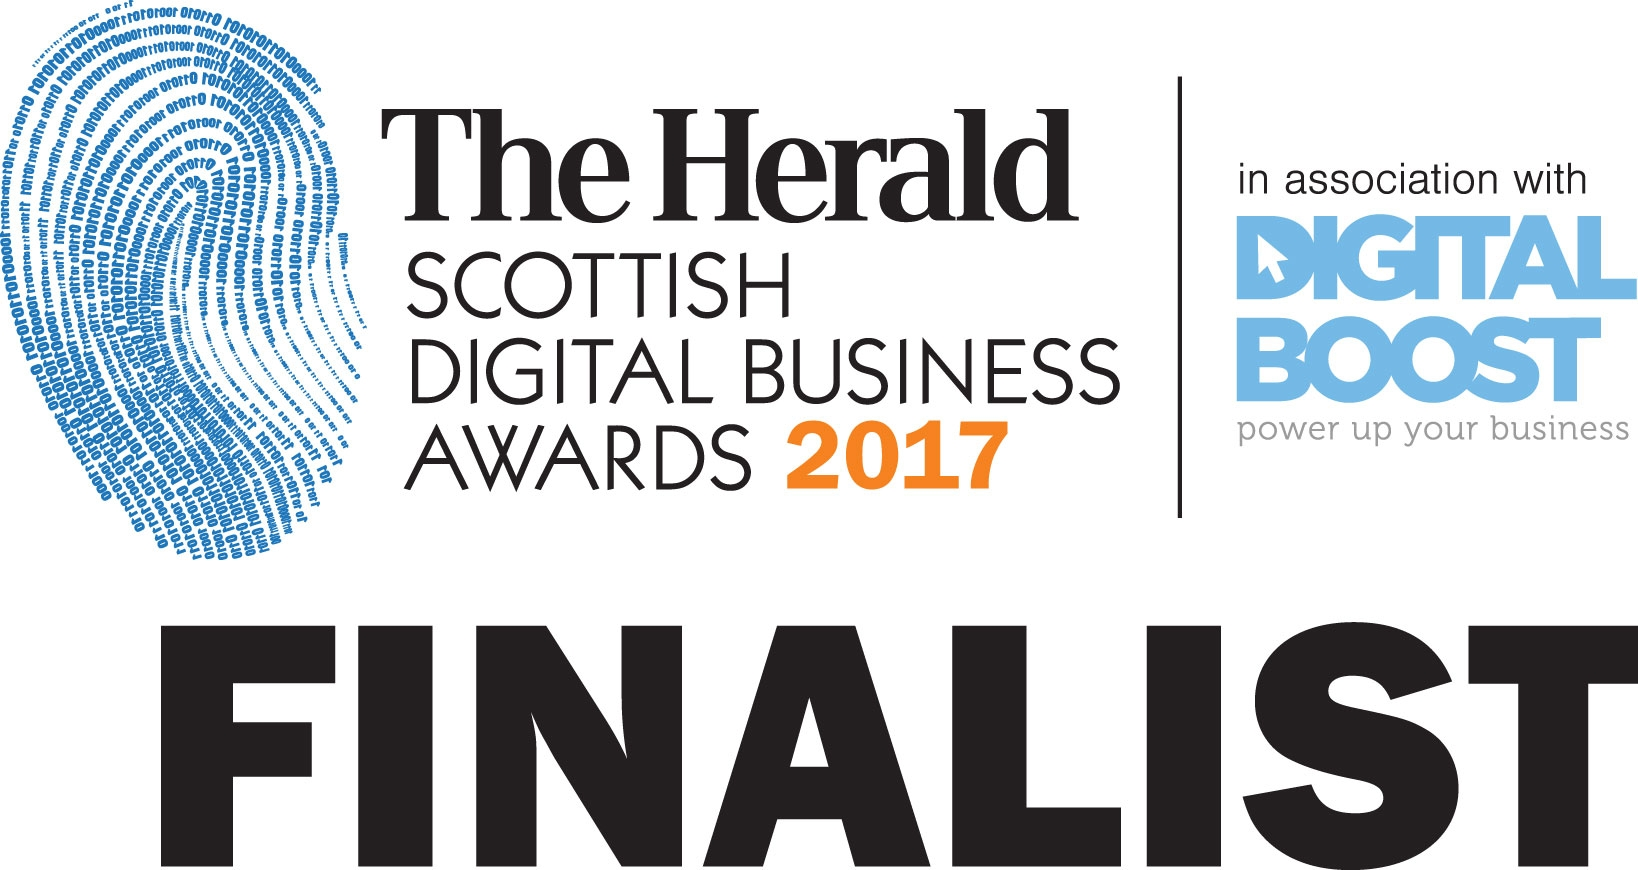 The Herald Scottish Digital Business Awards Finalist 2017